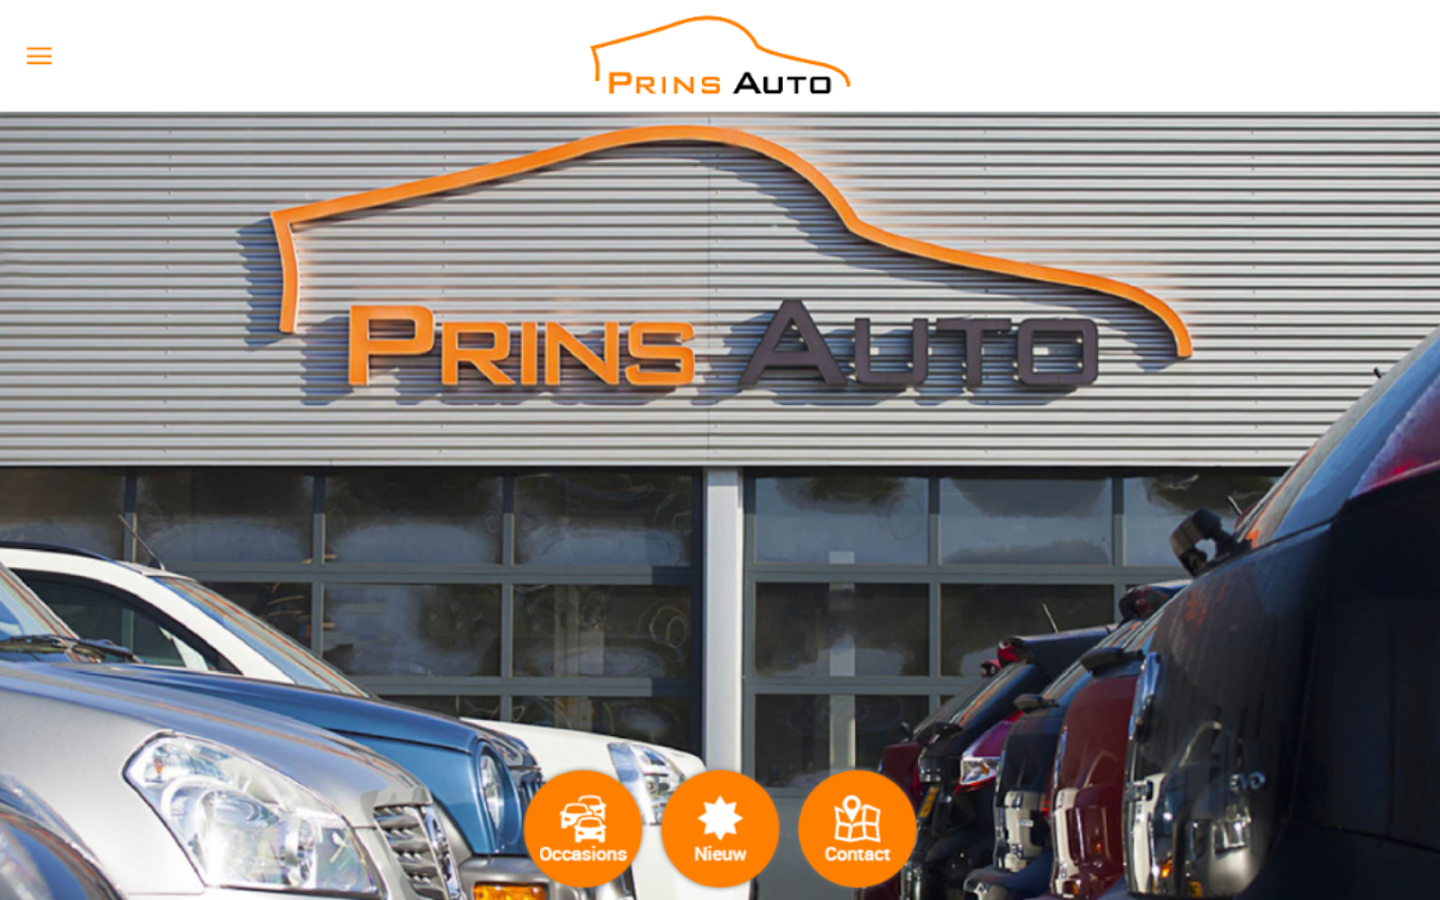 Prins Auto: screenshot